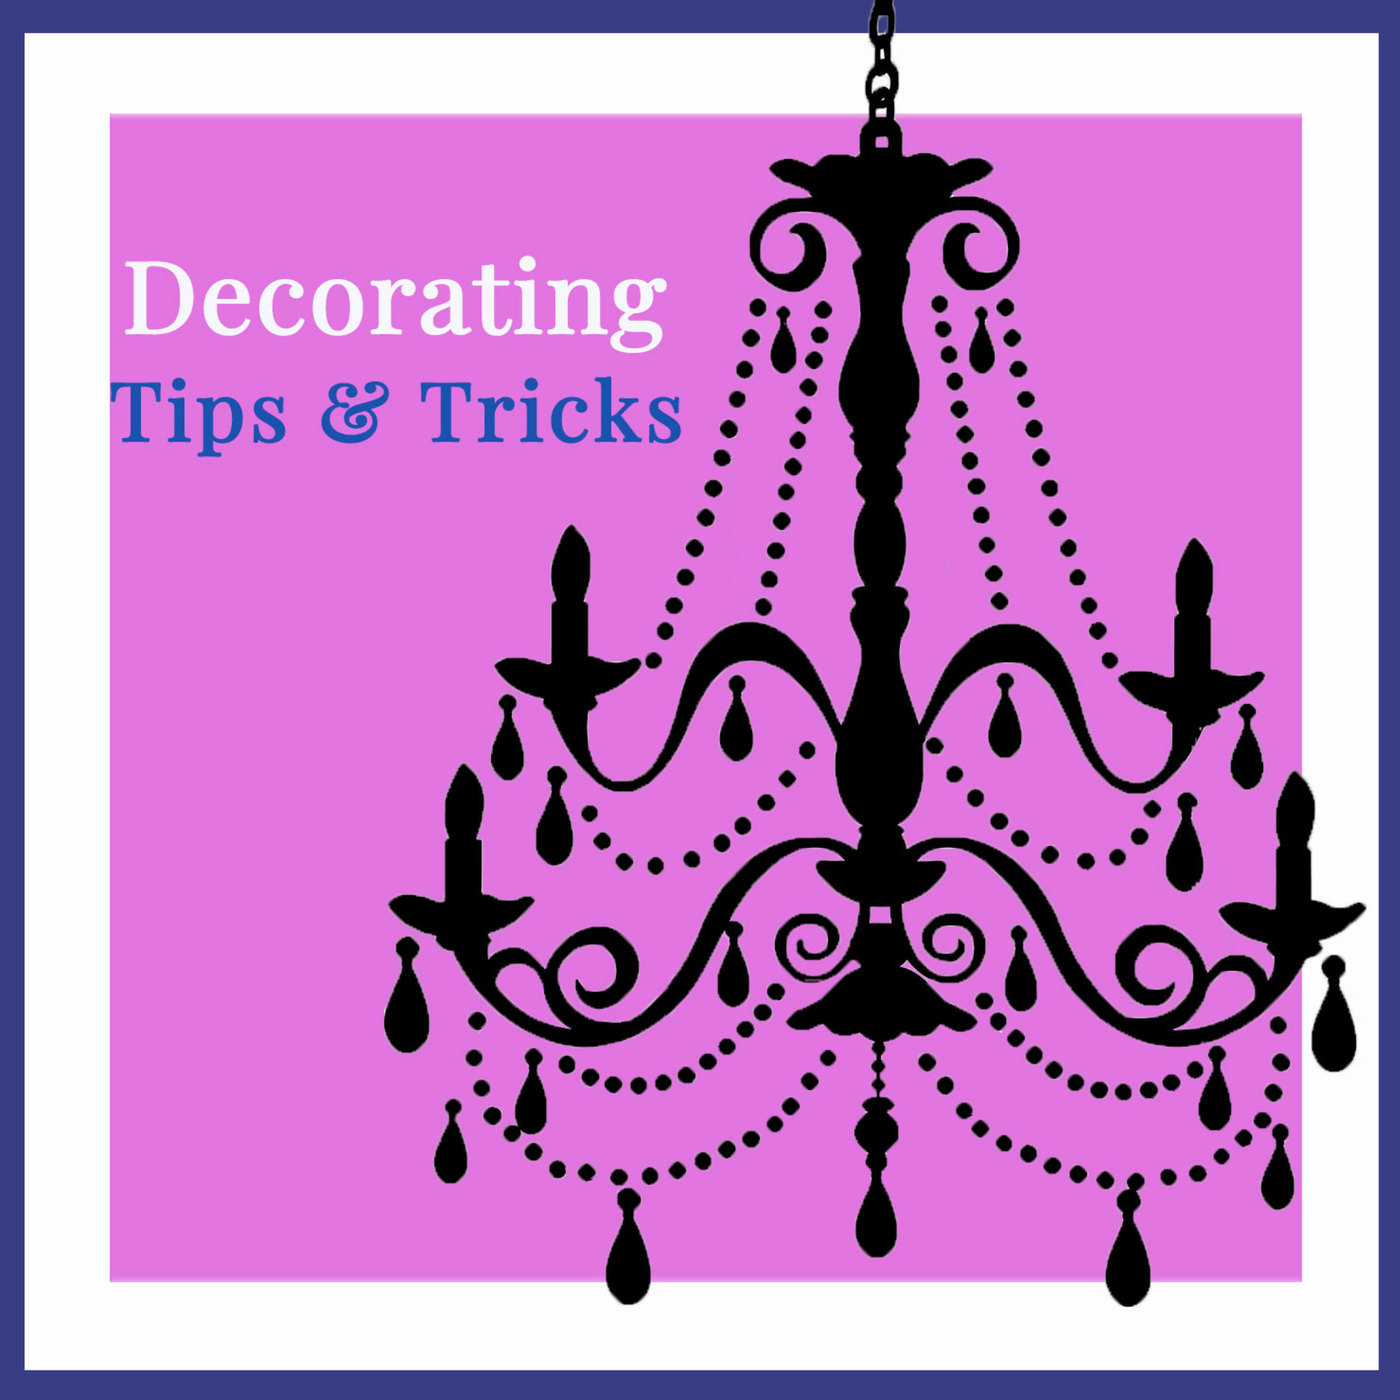 Decorating Tips and Tricks: Find Your Decorating Style